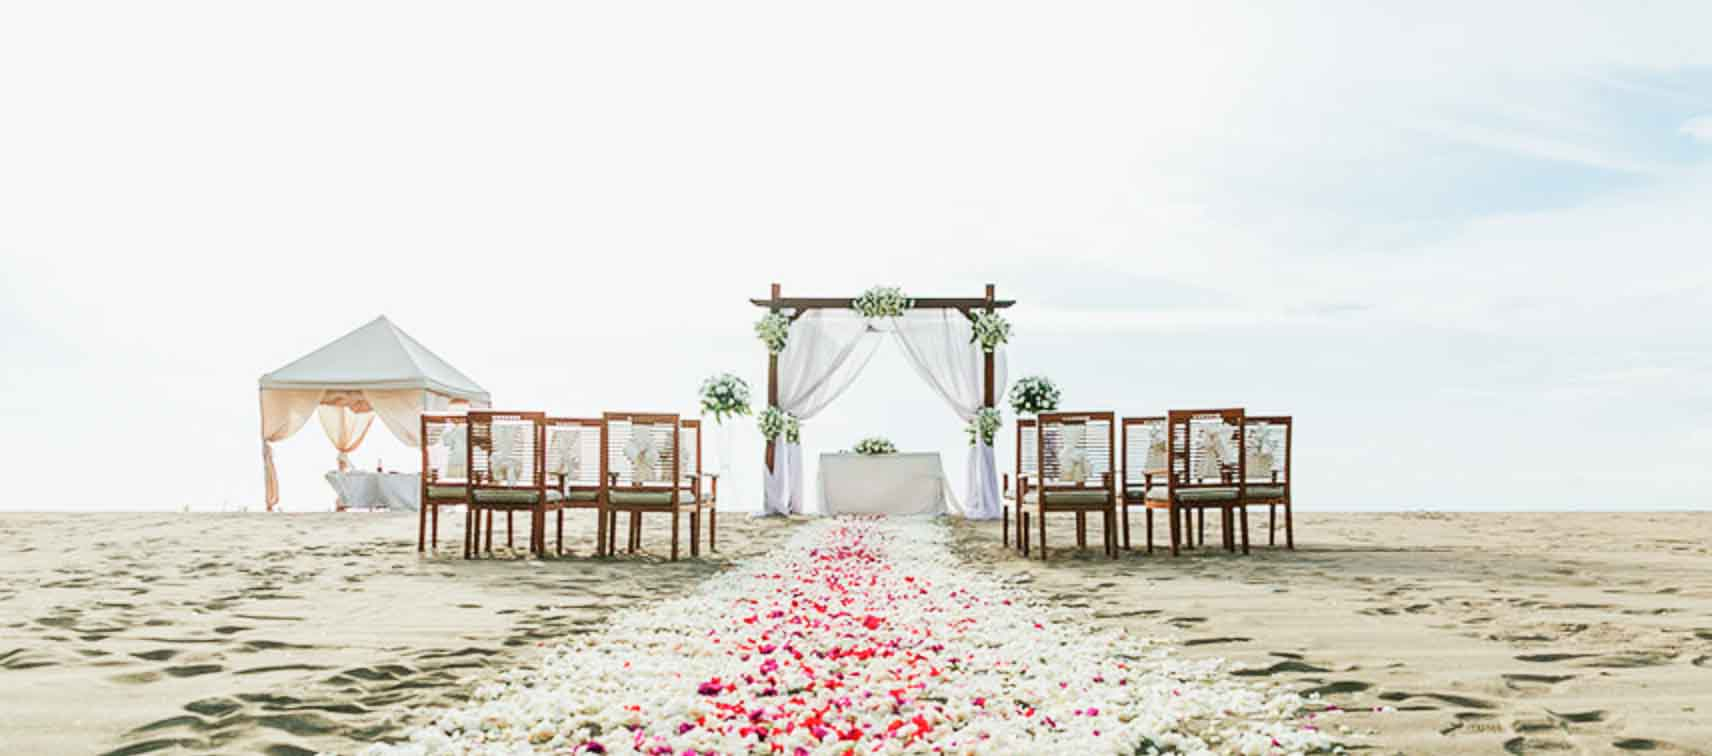 Ma Joly Sunset Beach Wedding Venue (30 - 100 Pax) Inclusive of Photograph & Videography + Makeup & Hair + Decorations-14